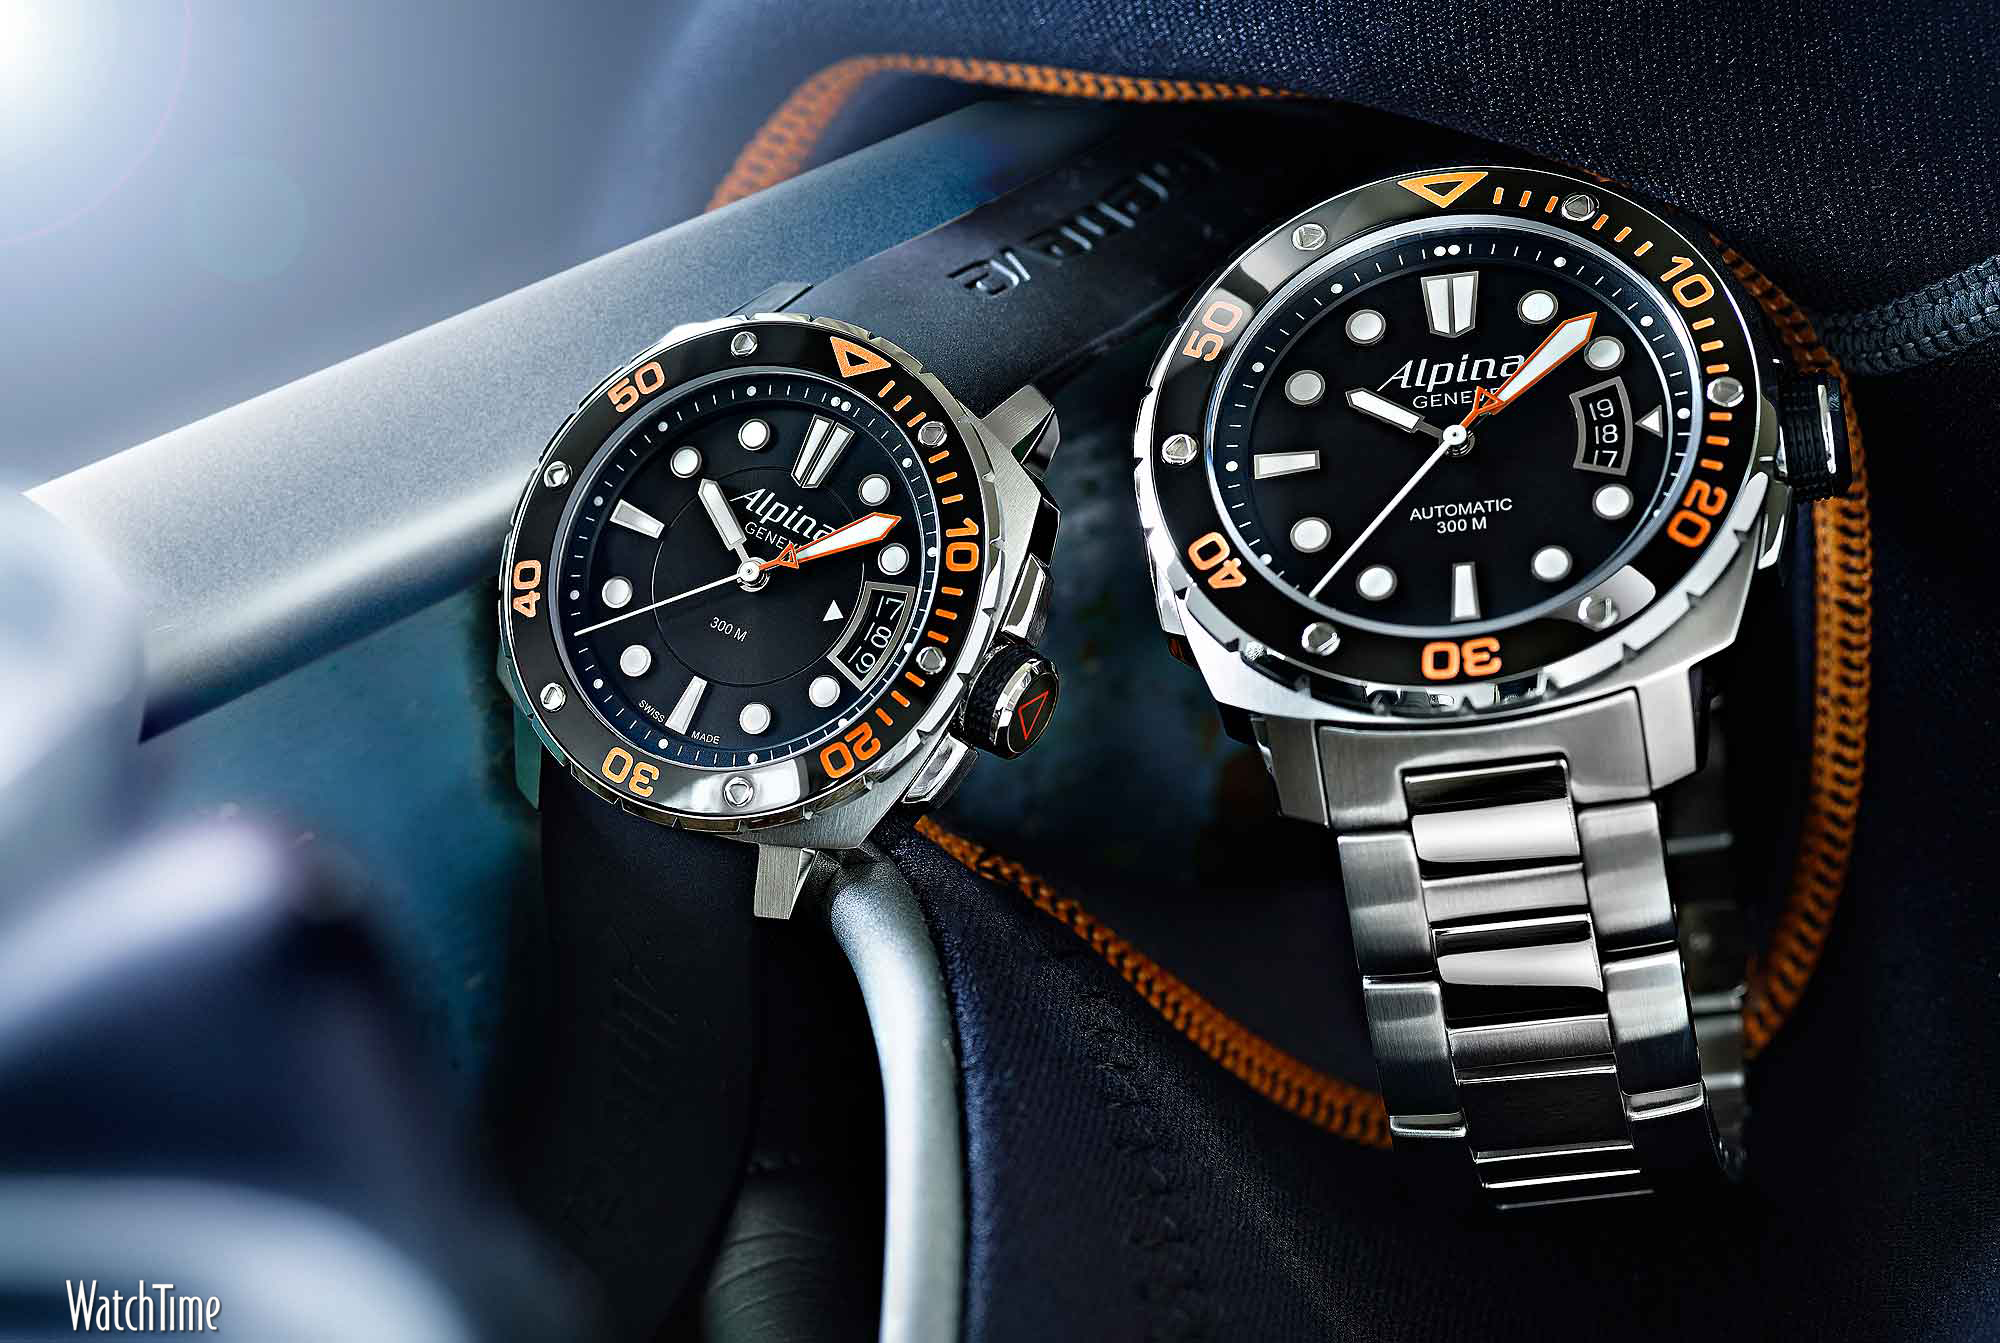 Watch Wallpaper 10 Divers Watches WatchTime   USAs No1 Watch 2000x1343